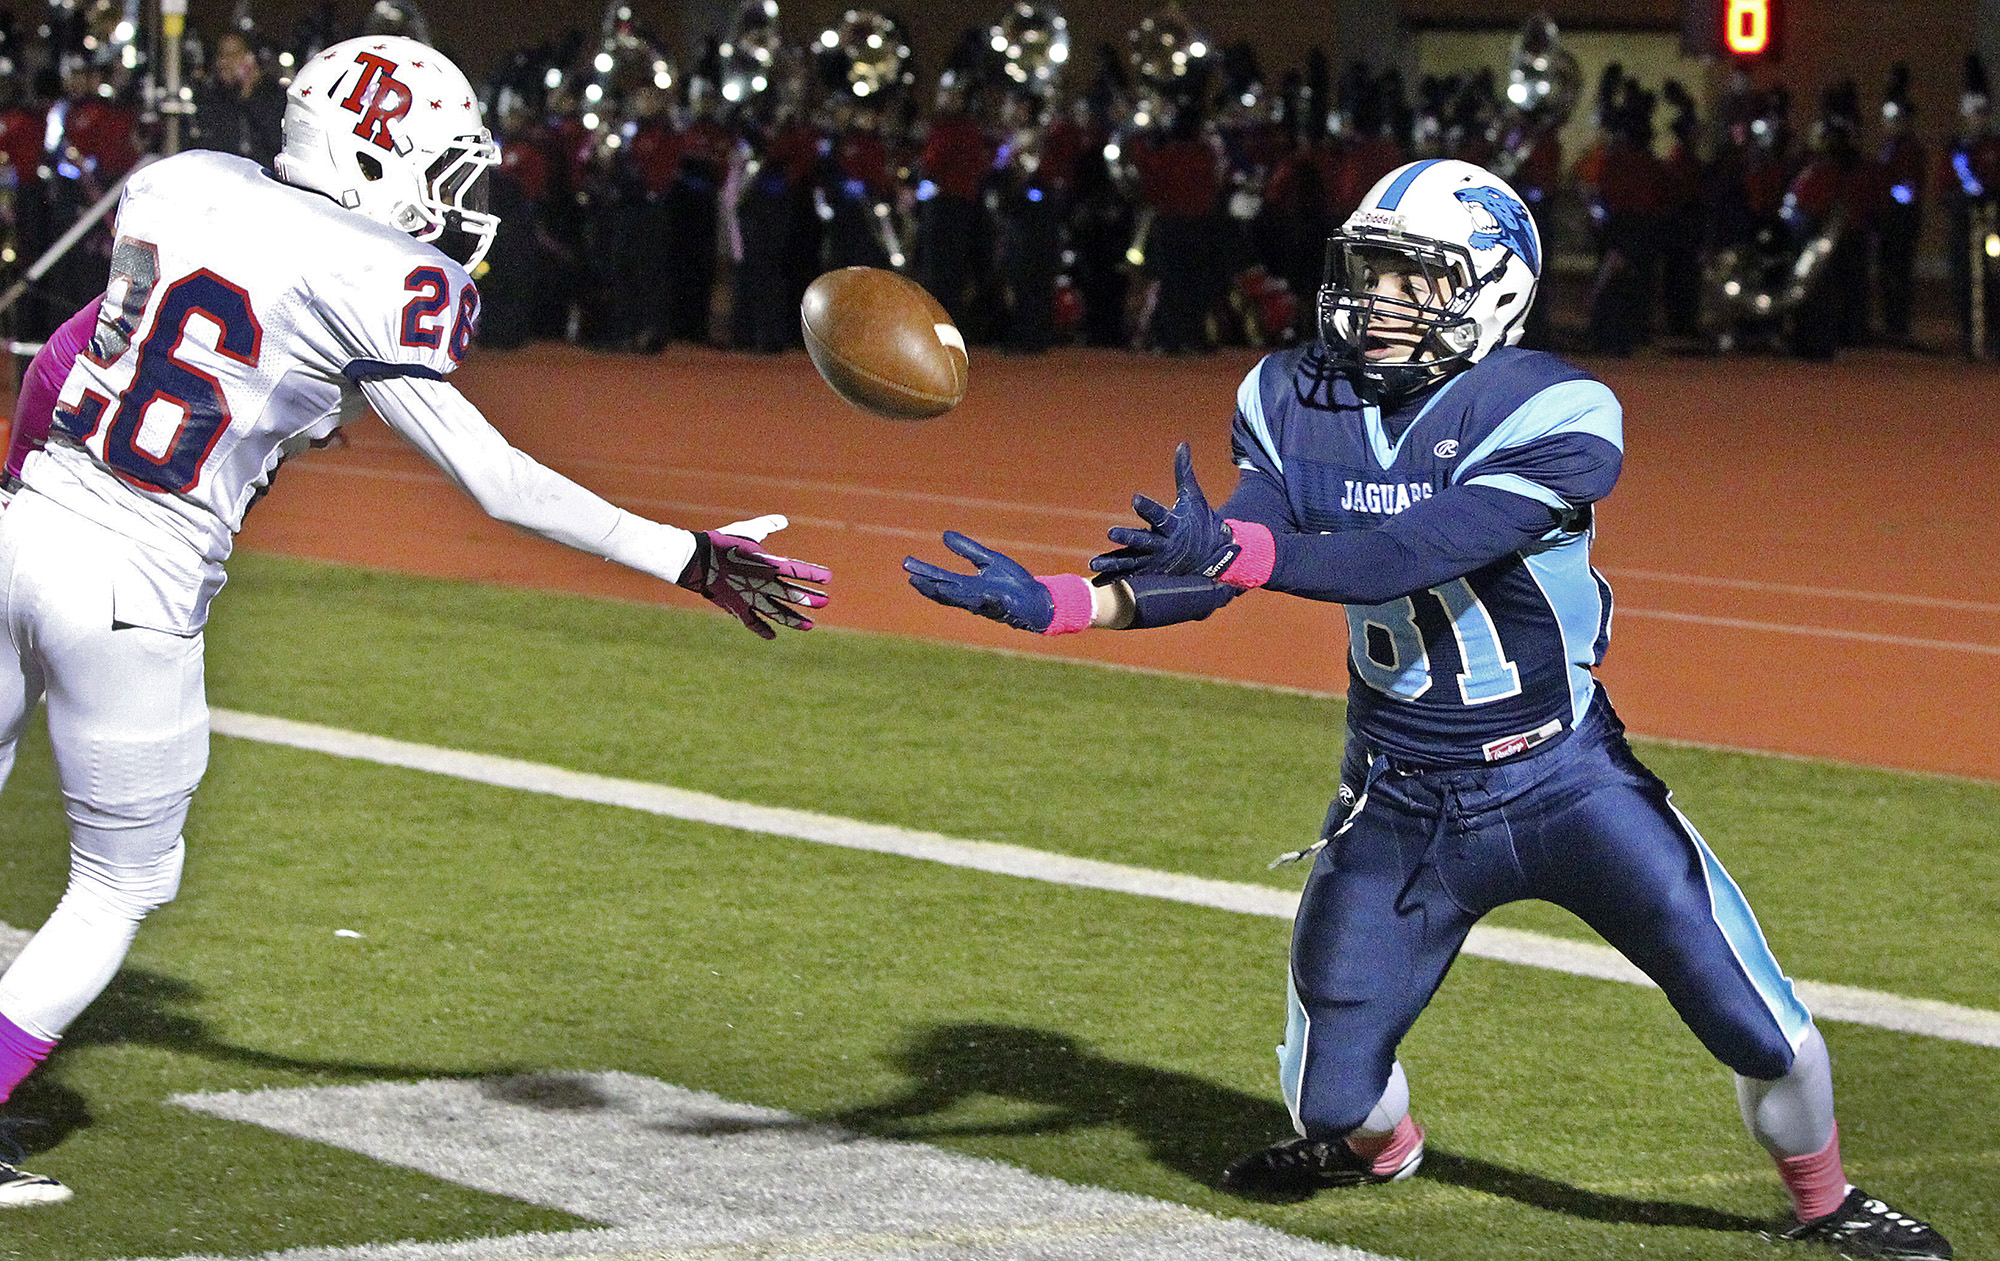 Johnson S Victory Sets Stage For Battle Of Unbeatens San